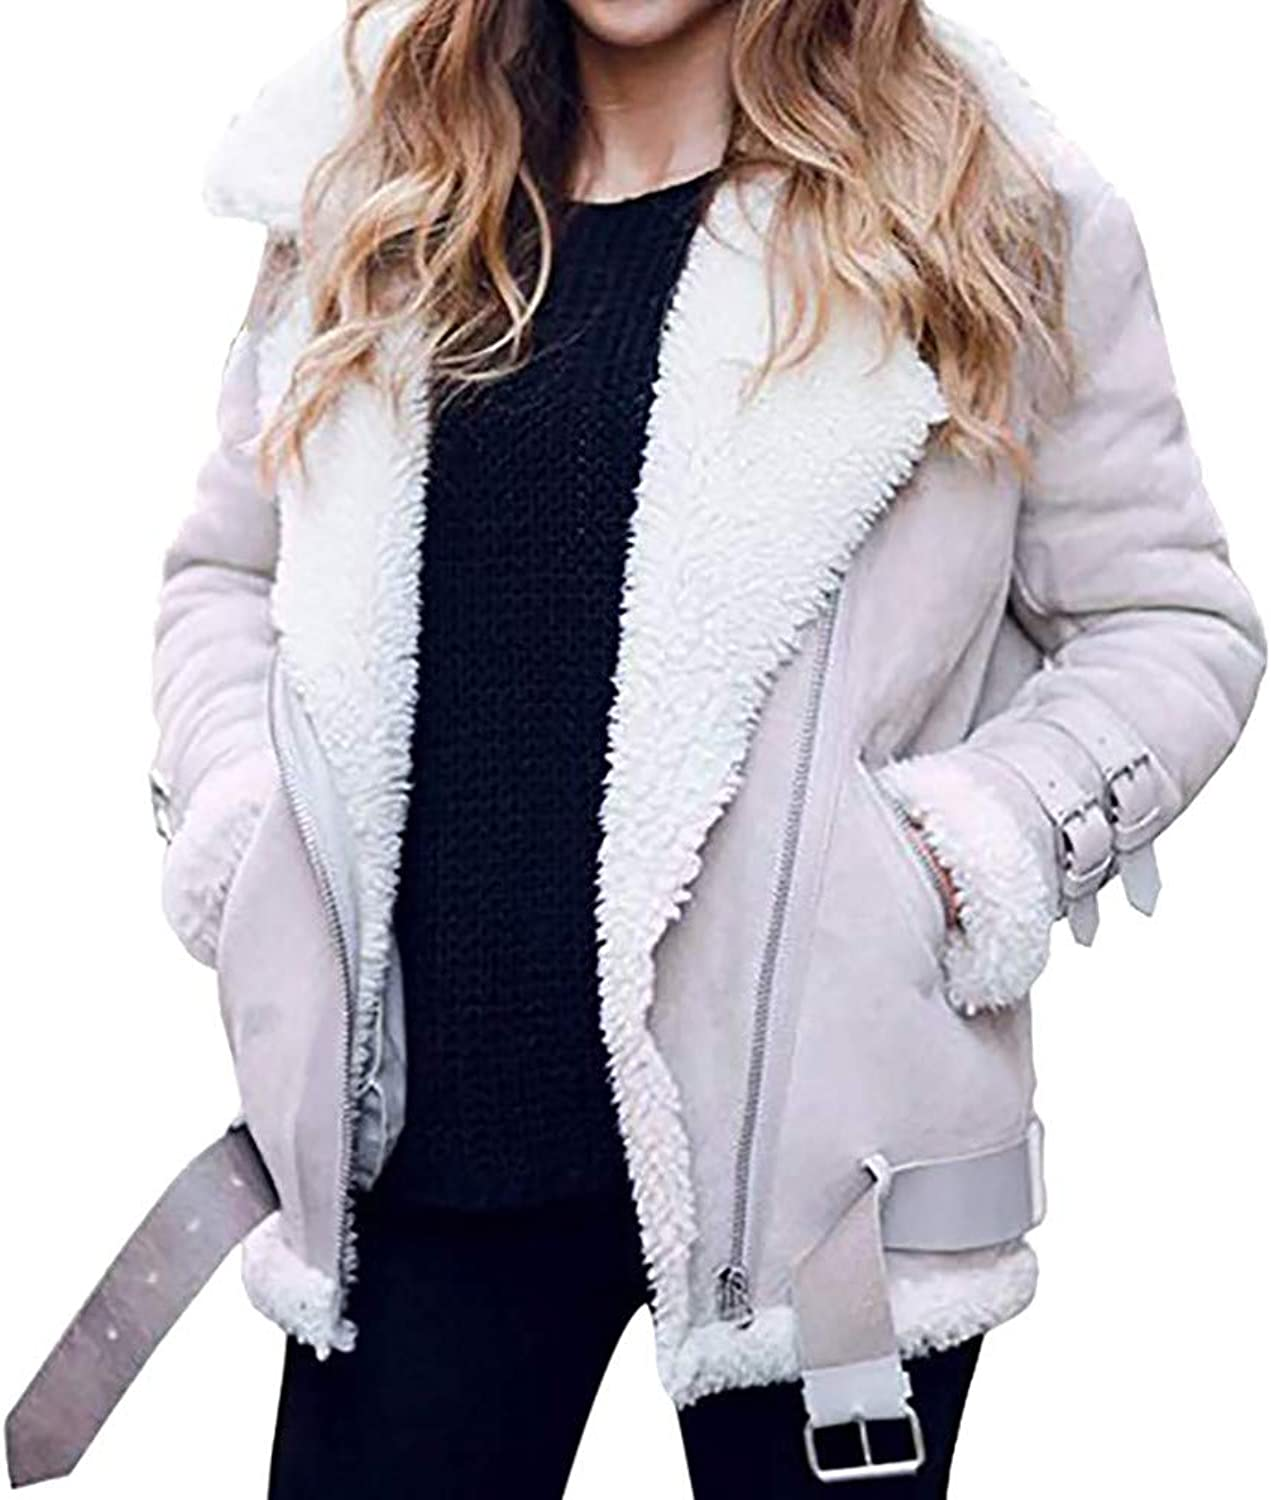 Wokasun.JJ Winter Women Faux Fur Fleece Coat Outwear Warm Lapel Biker Motor Aviator Jacket